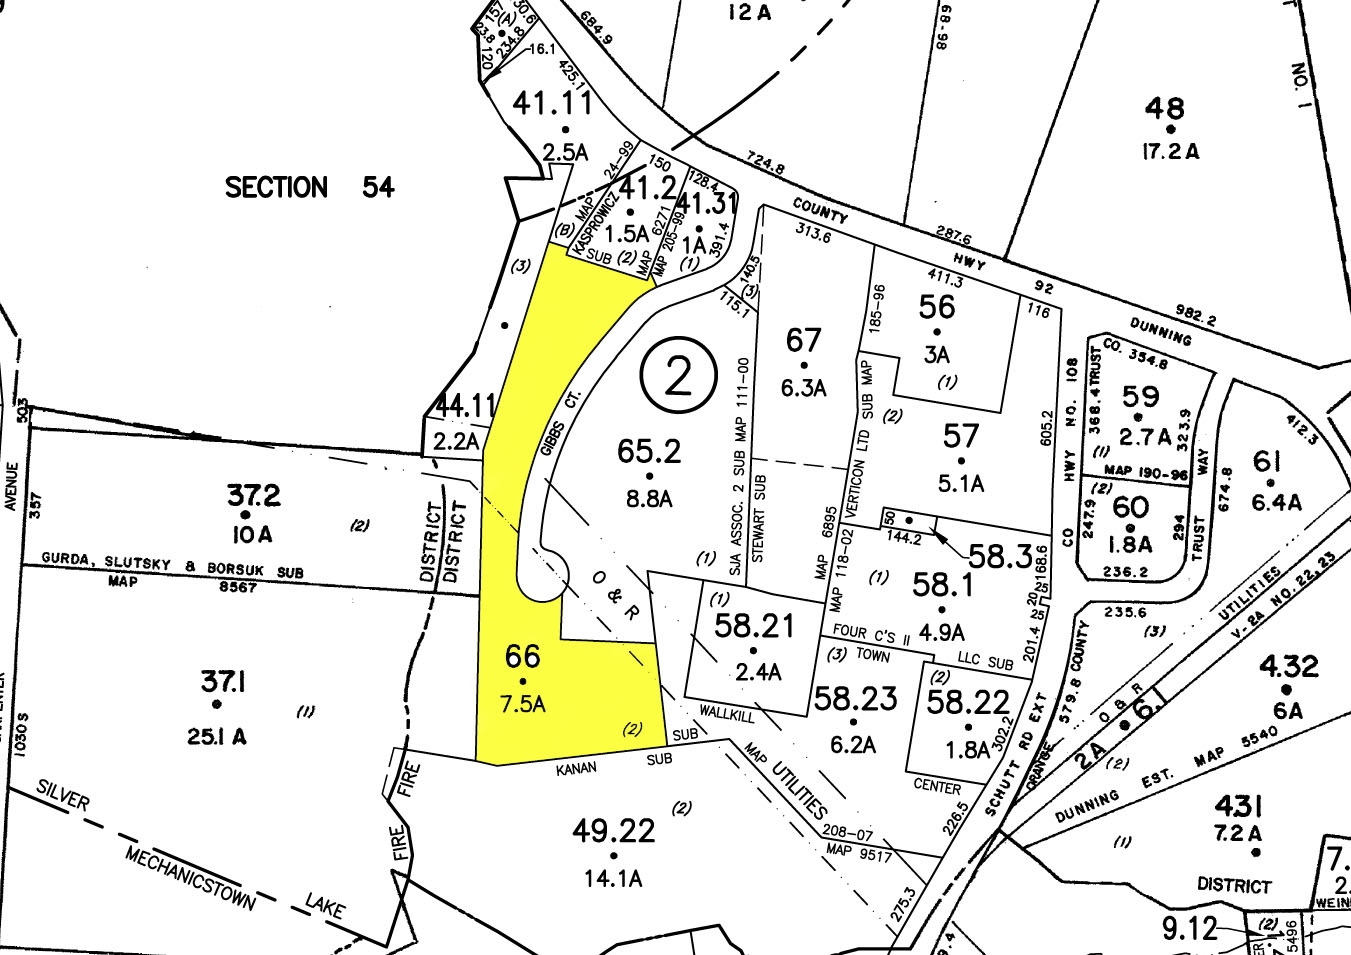 Land For Sale Gibbs Ct Amp Dunning Rd Middletown Ny 10940